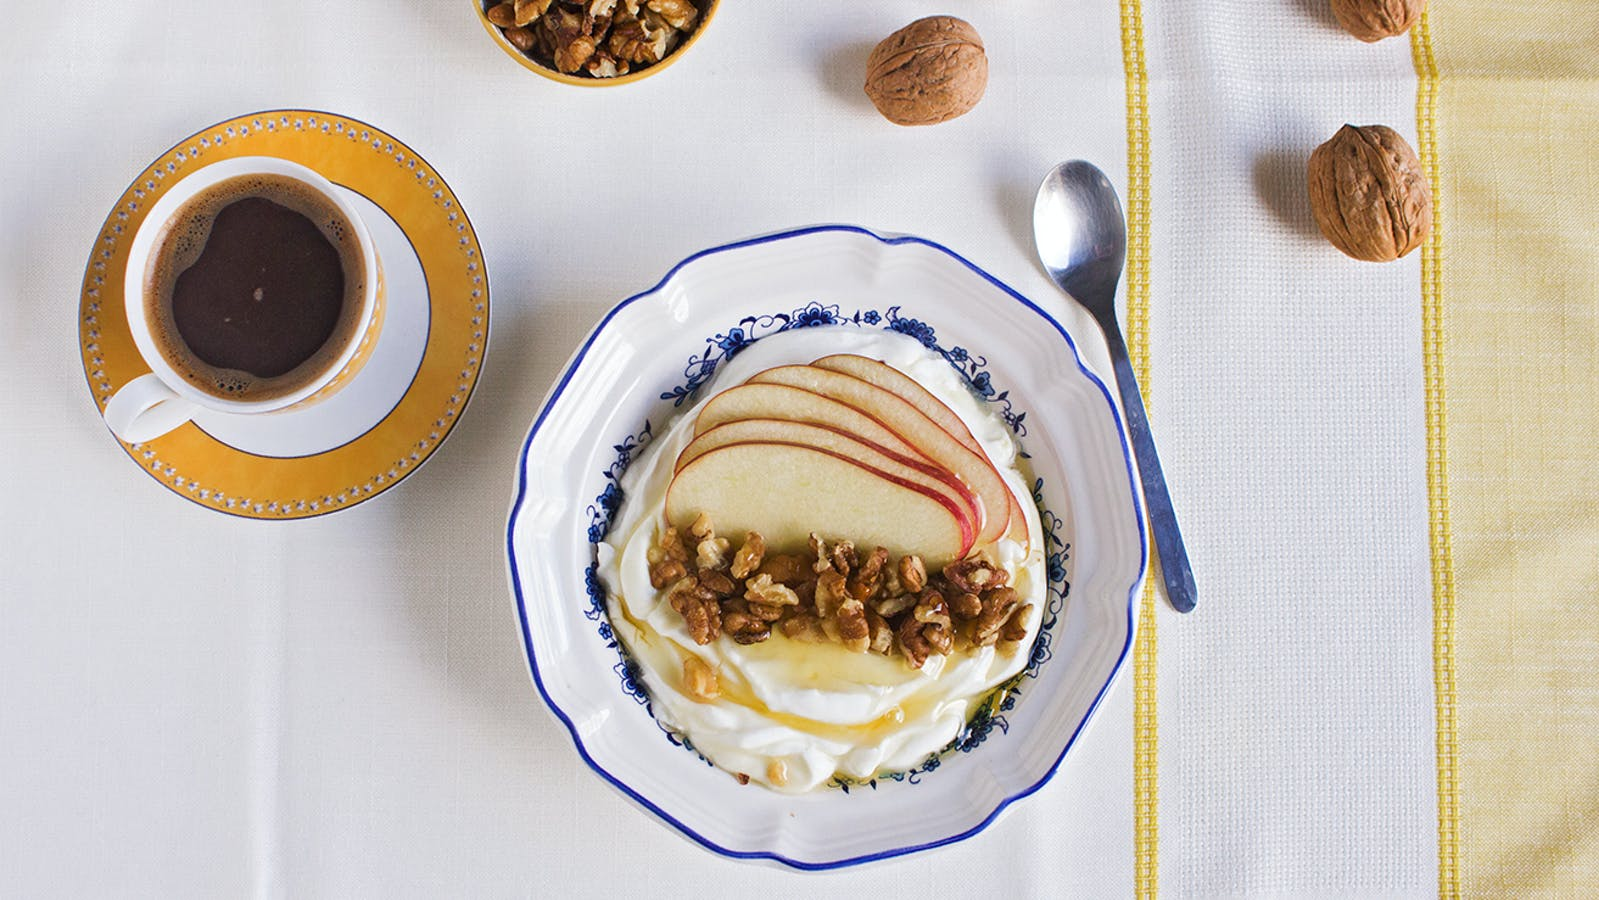 Greek breakfast: yogurt, honey and nuts